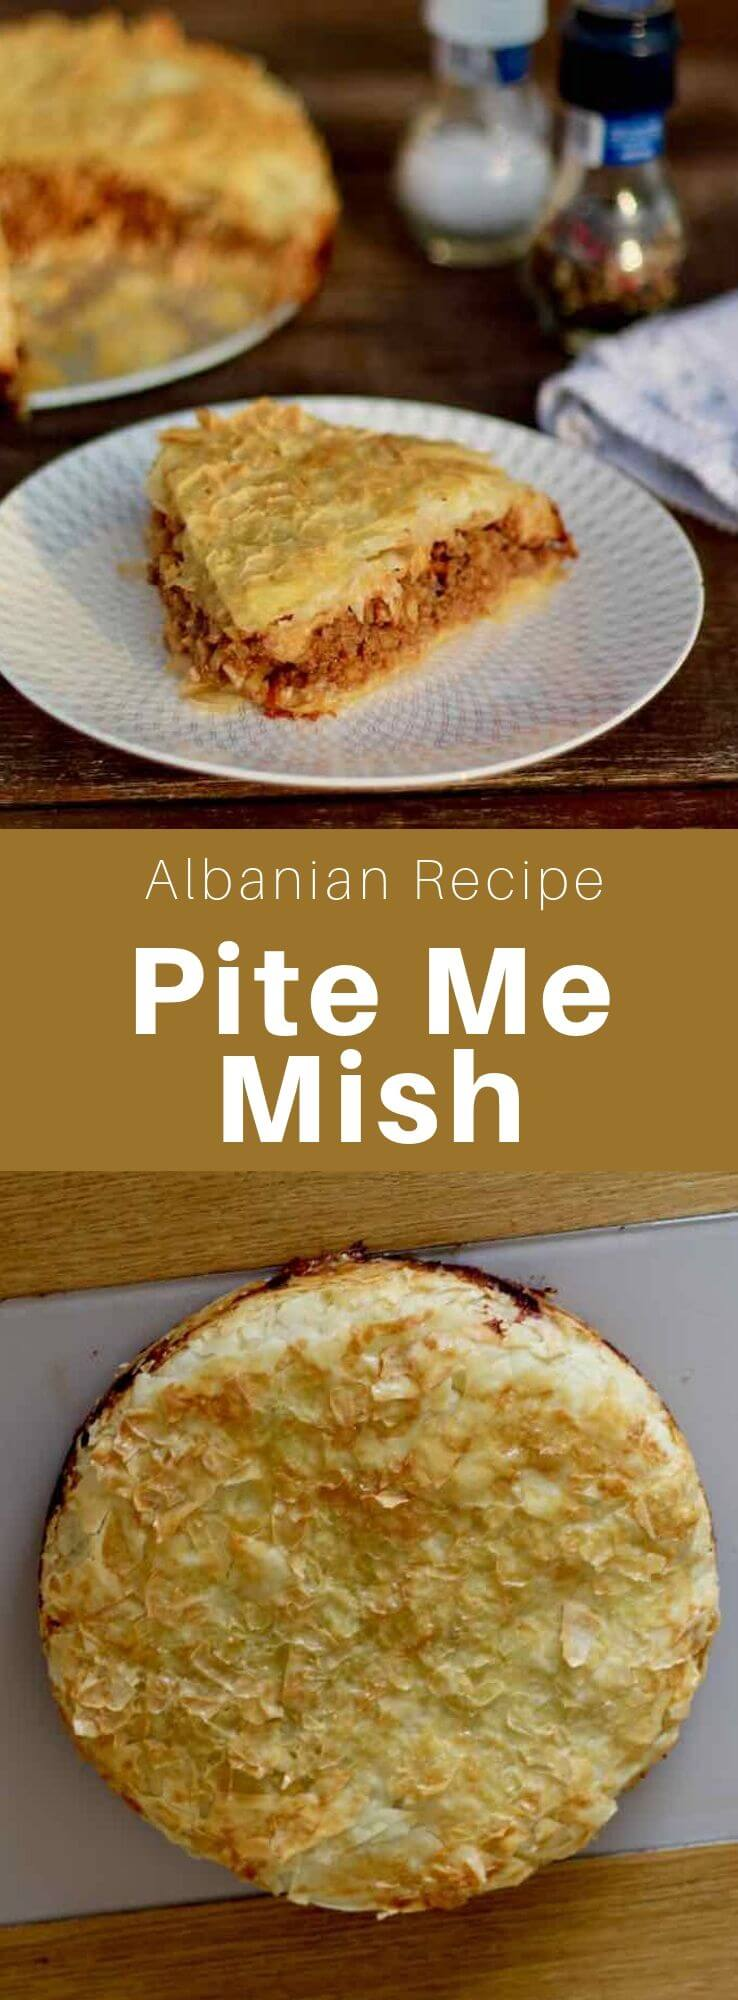 Pite me mish (or byrek me mish) is a phyllo dough based pie that is filled with meat, and is traditional in Albanian cuisine. #Albania #AlbanianCuisine #AlbanianRecipe #WorldCuisine #196flavors